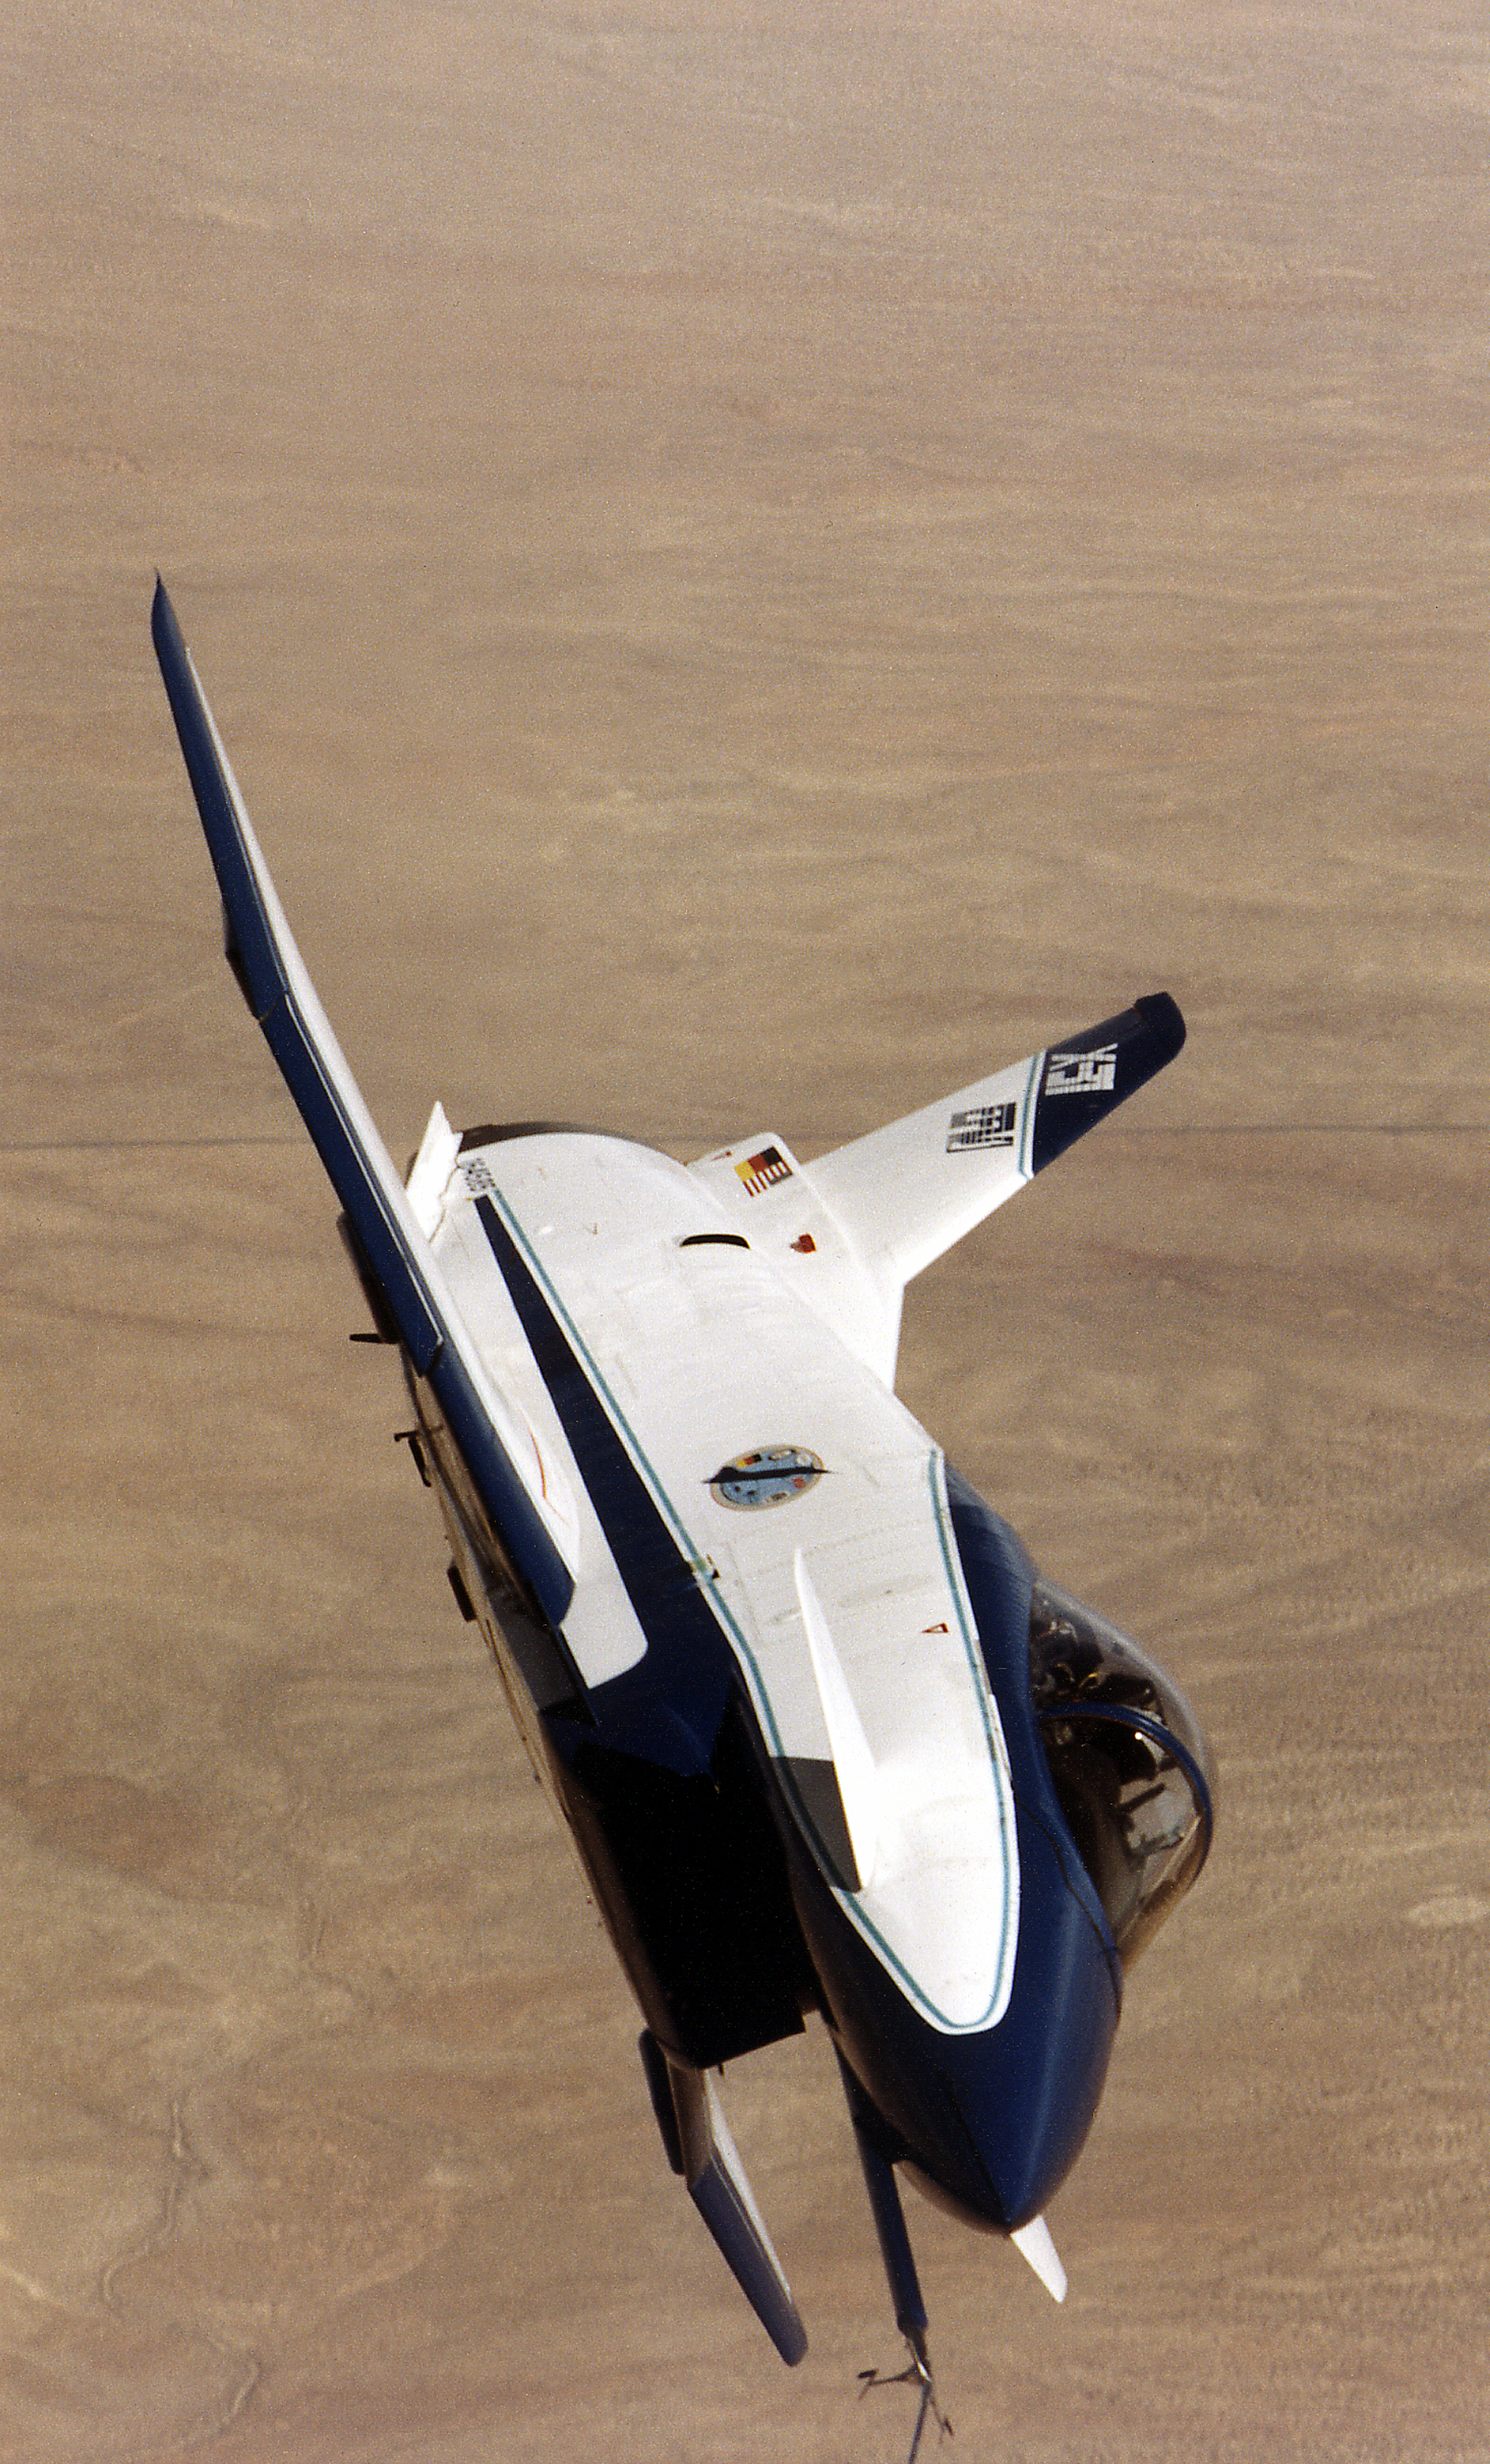 File:X-31 in Banked Flight.jpg - Wikimedia Commons